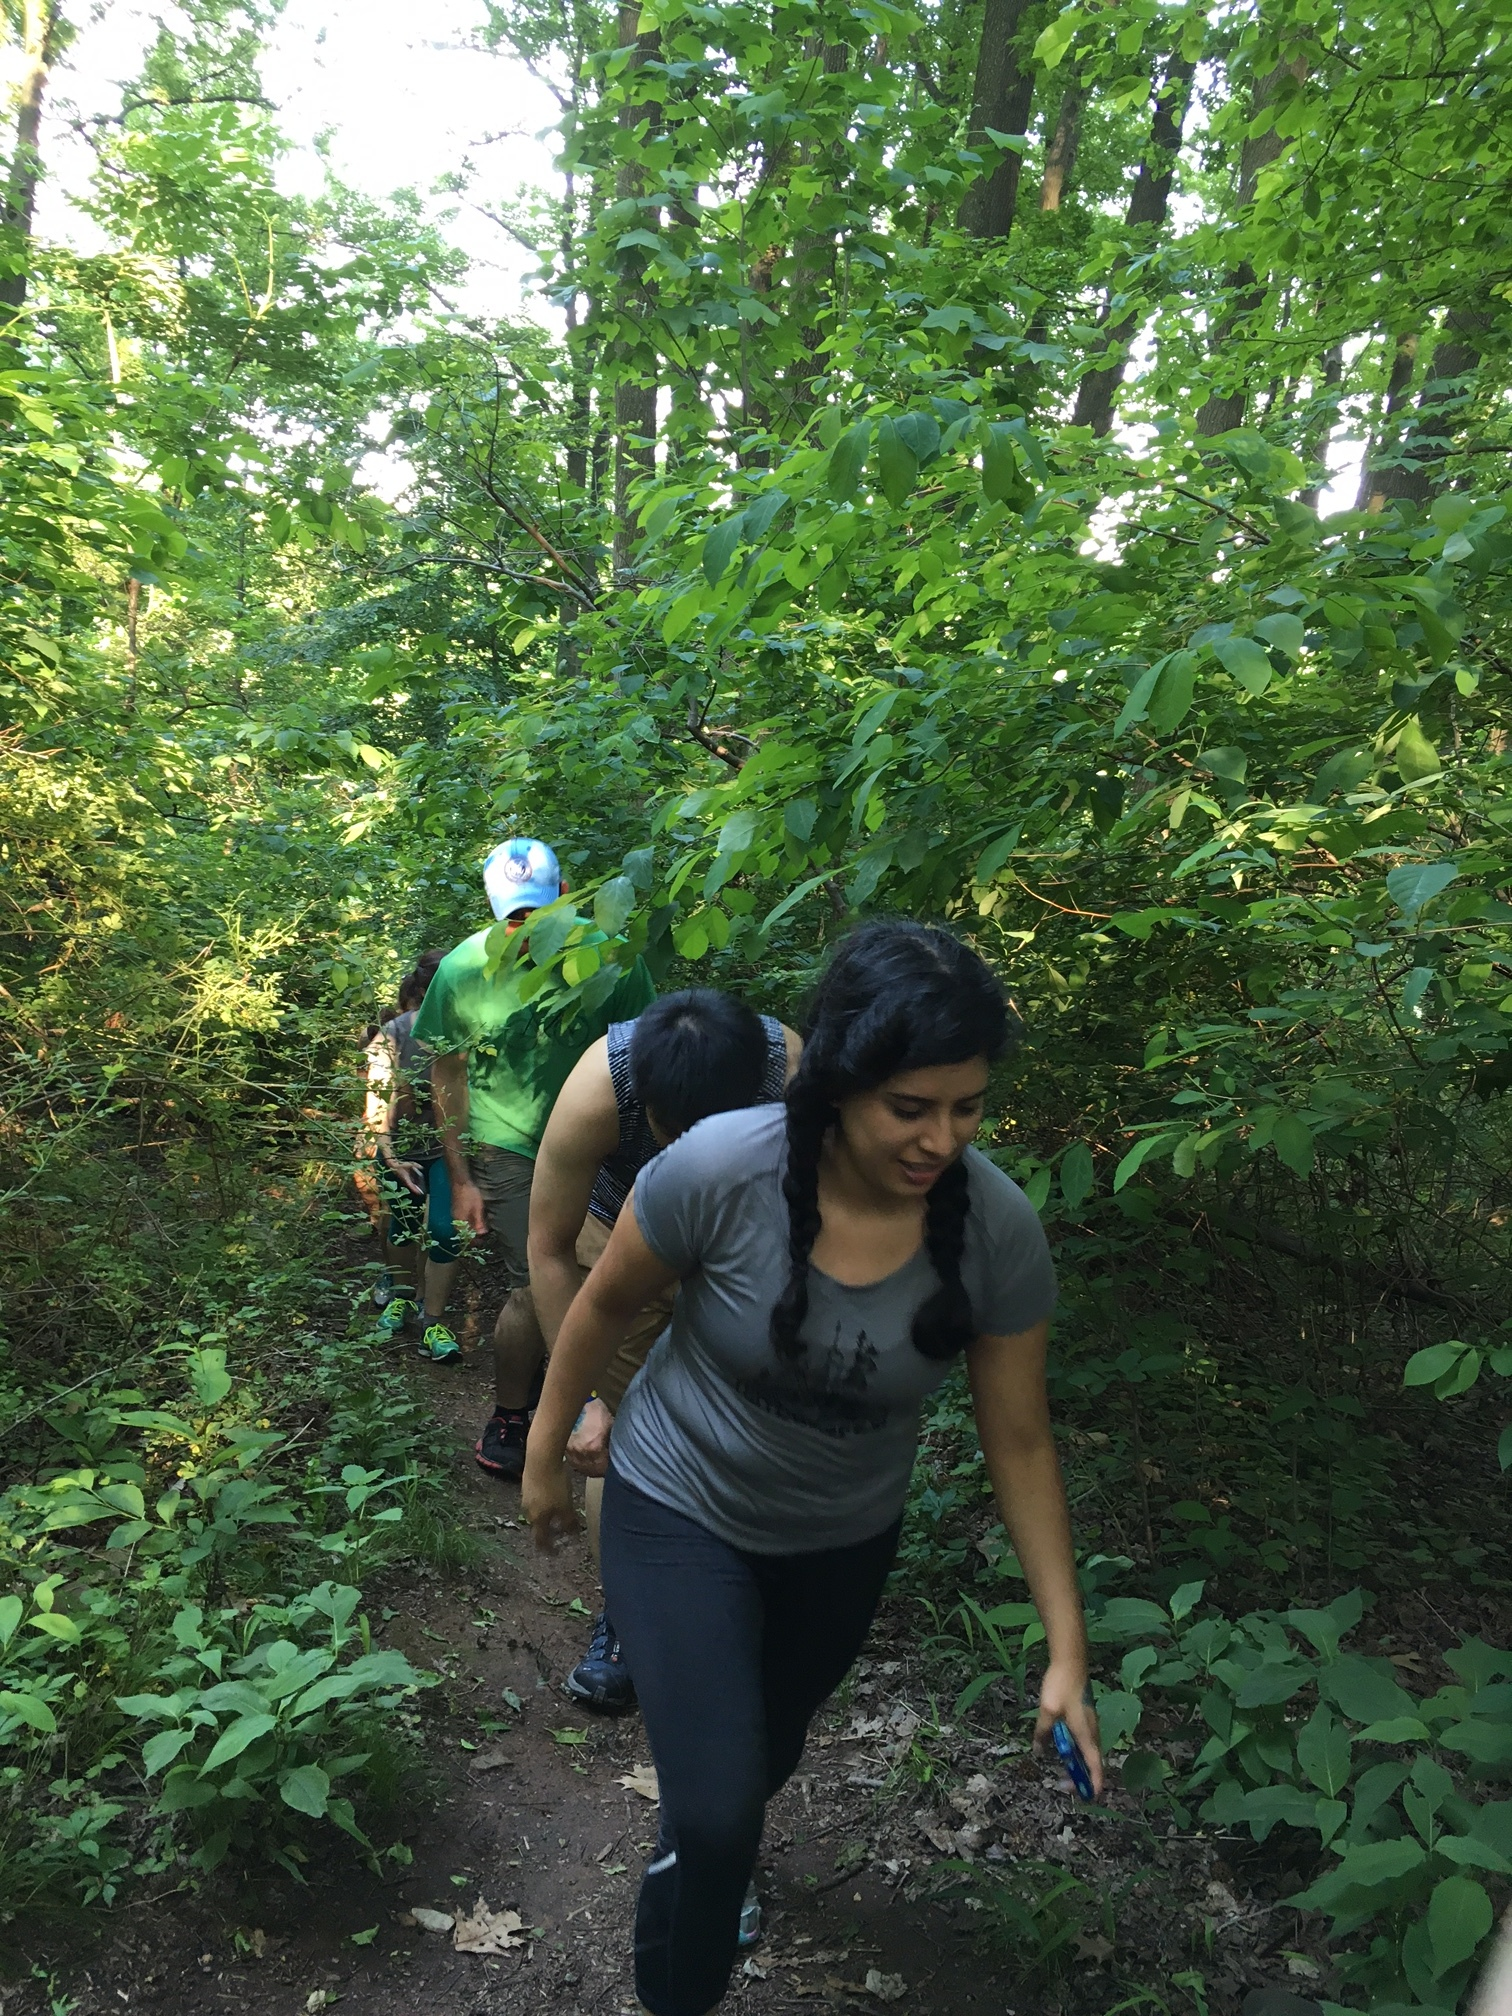 Warming up with a 5-mile hike led by the Staten Island Greenbelt Conservancy